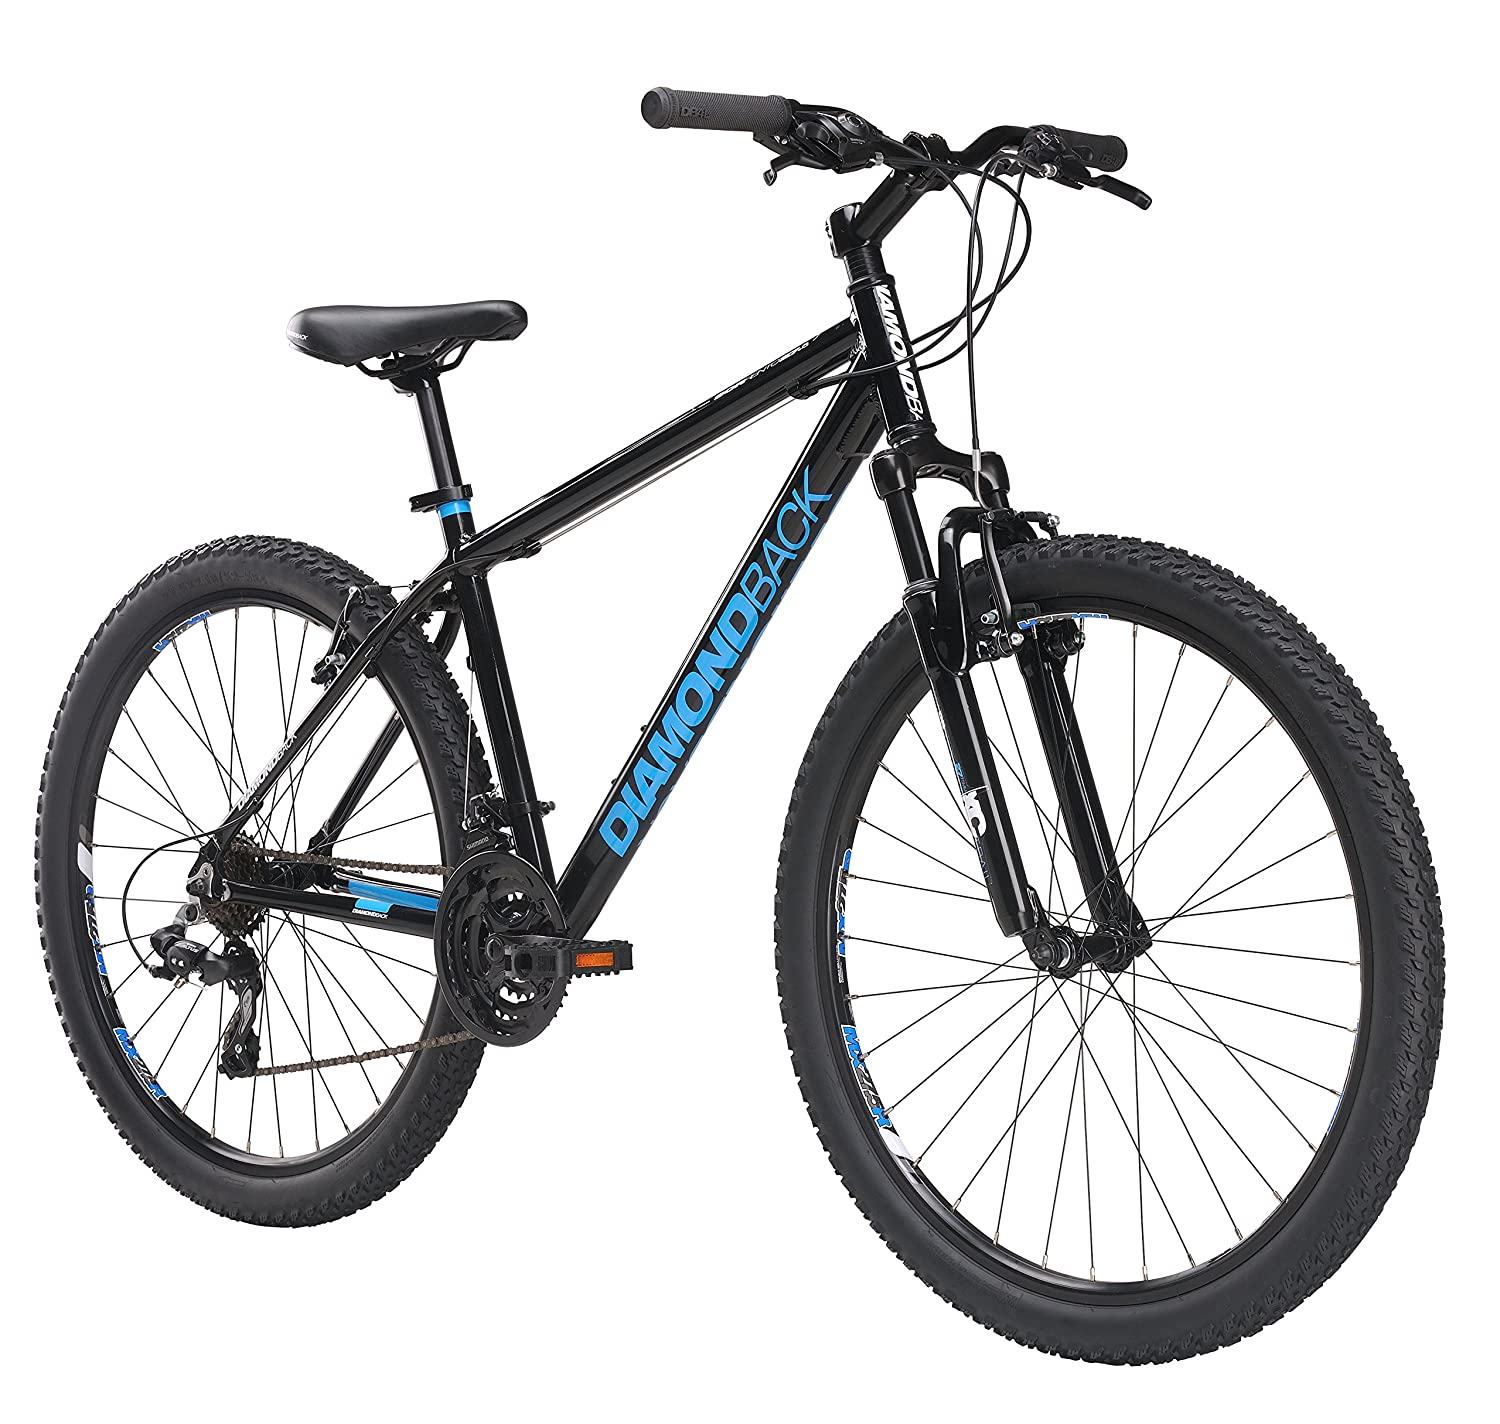 Top 10 Best Mountain Bikes (2020 Reviews & Buying Guide) 4